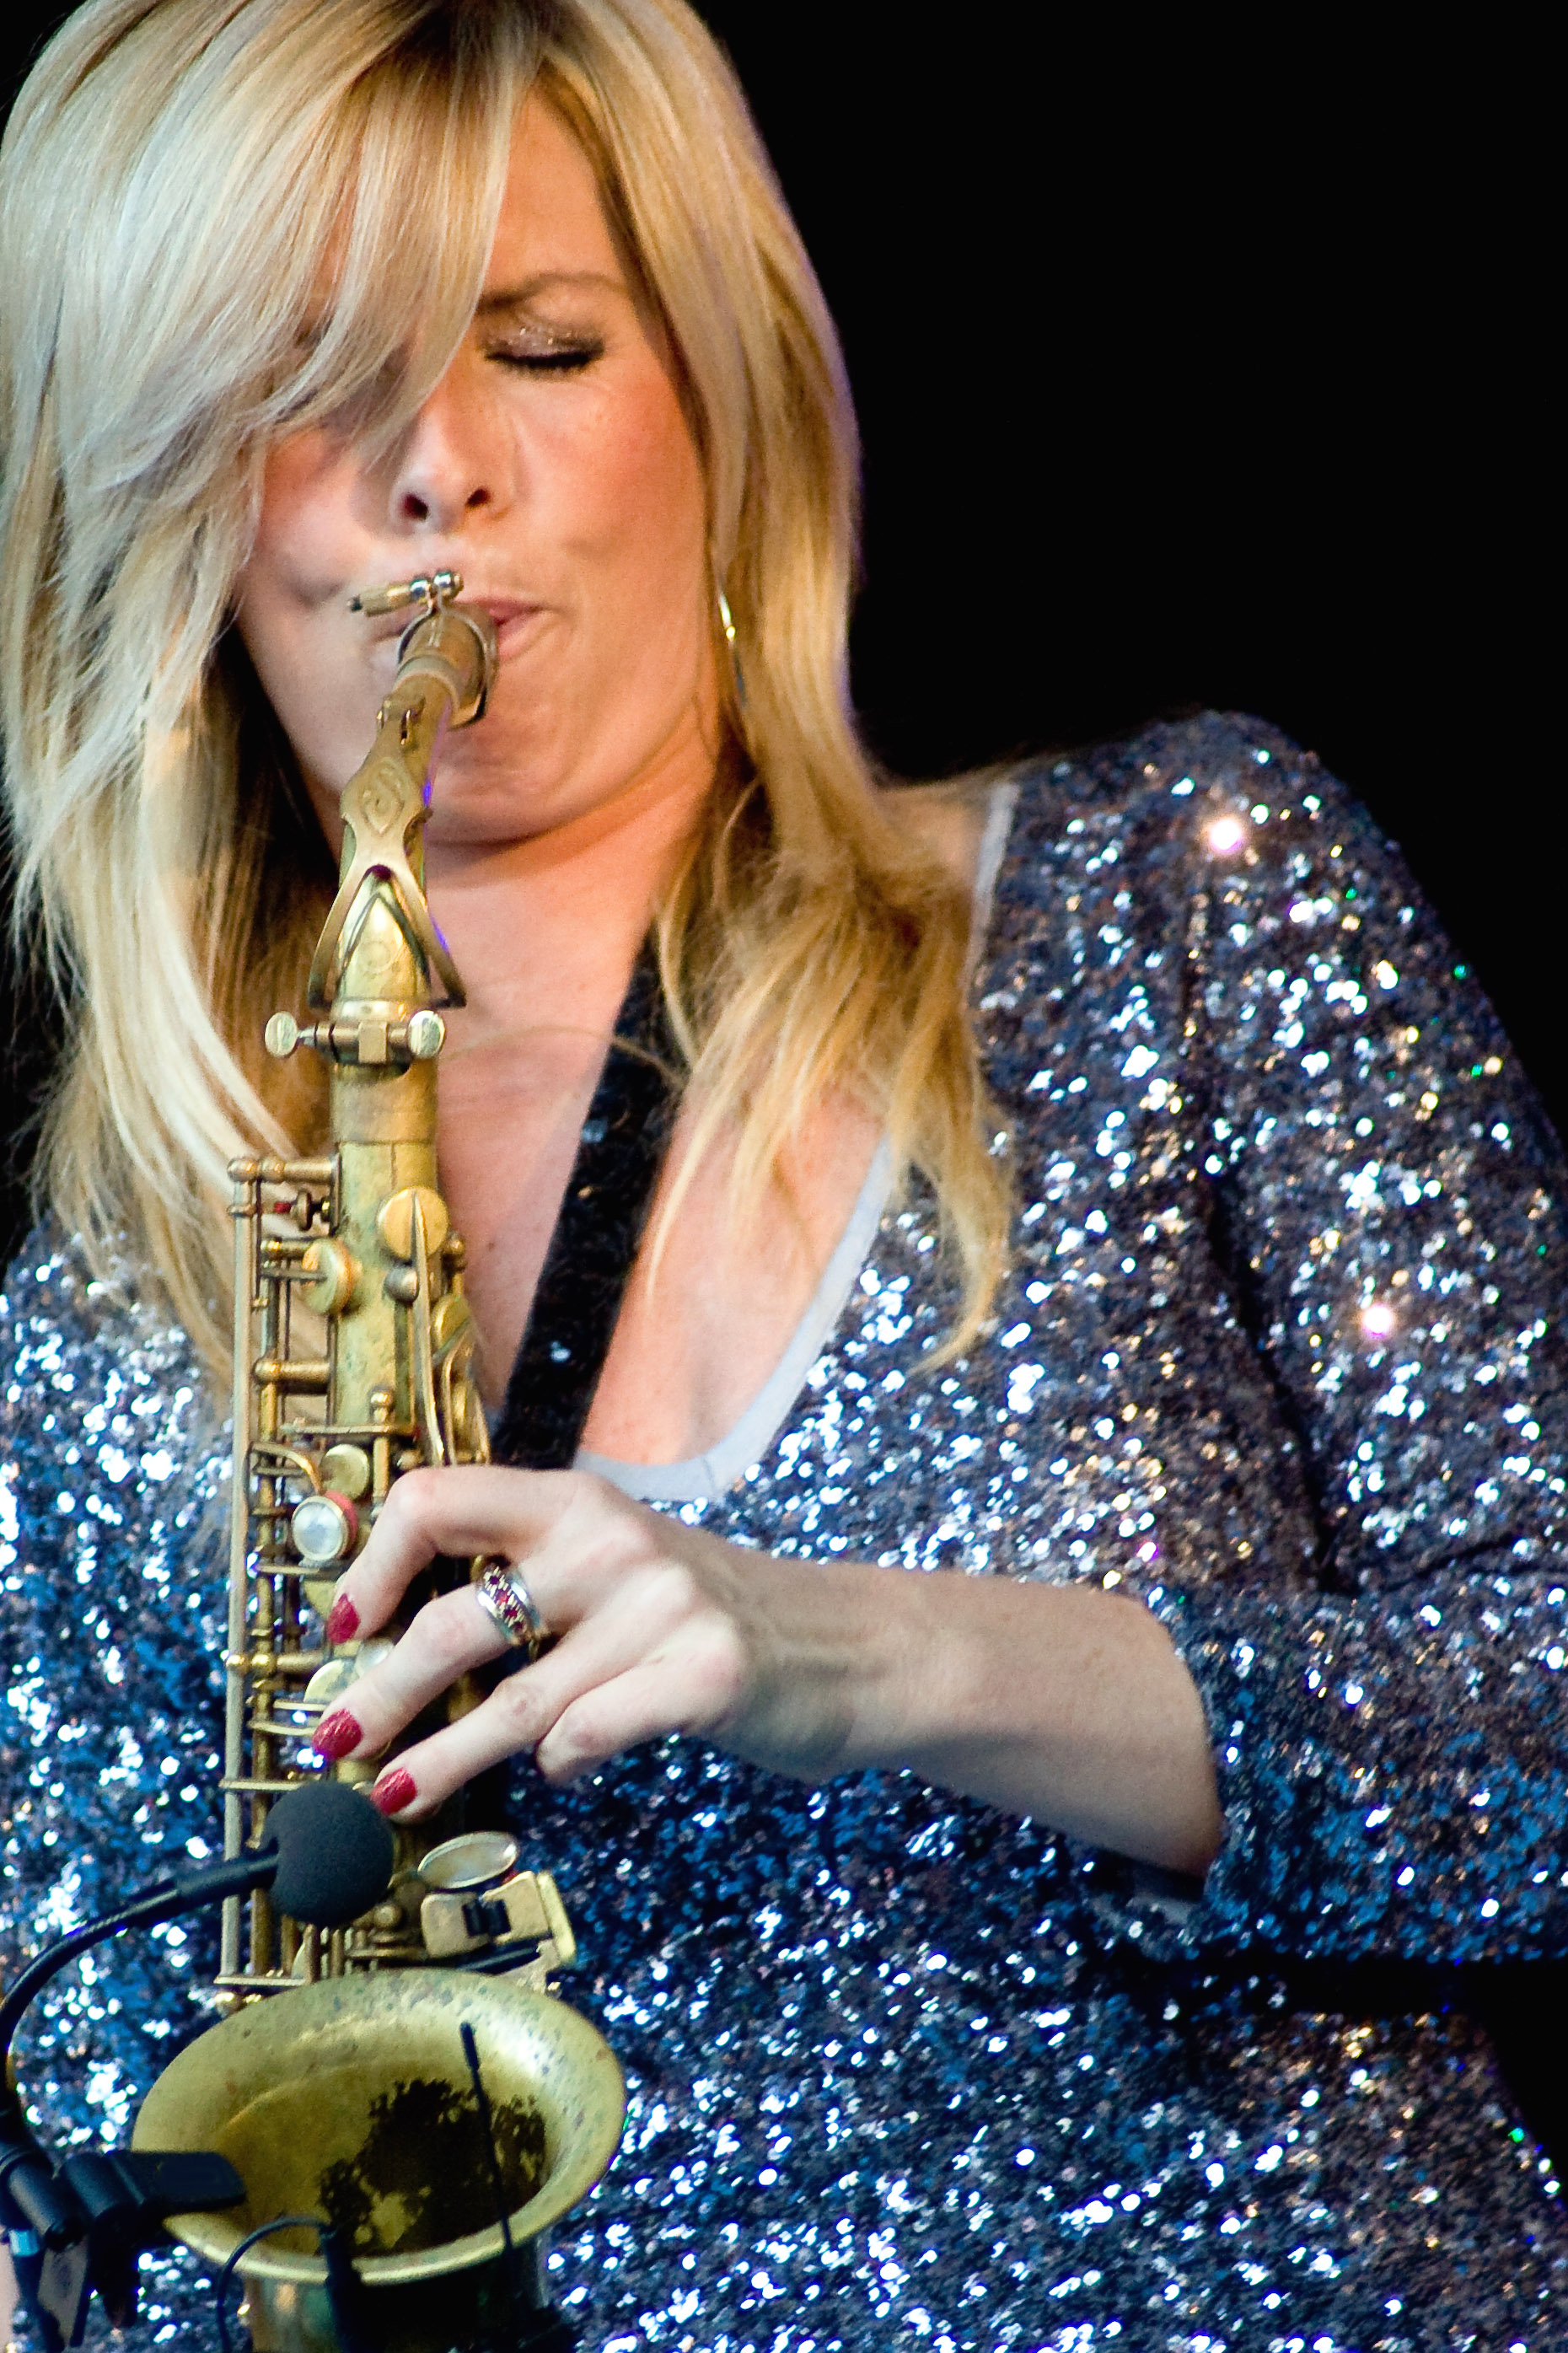 The 49-year old daughter of father Hans Dulfer and mother Inge Dulfer Candy Dulfer in 2018 photo. Candy Dulfer earned a  million dollar salary - leaving the net worth at 0.8 million in 2018